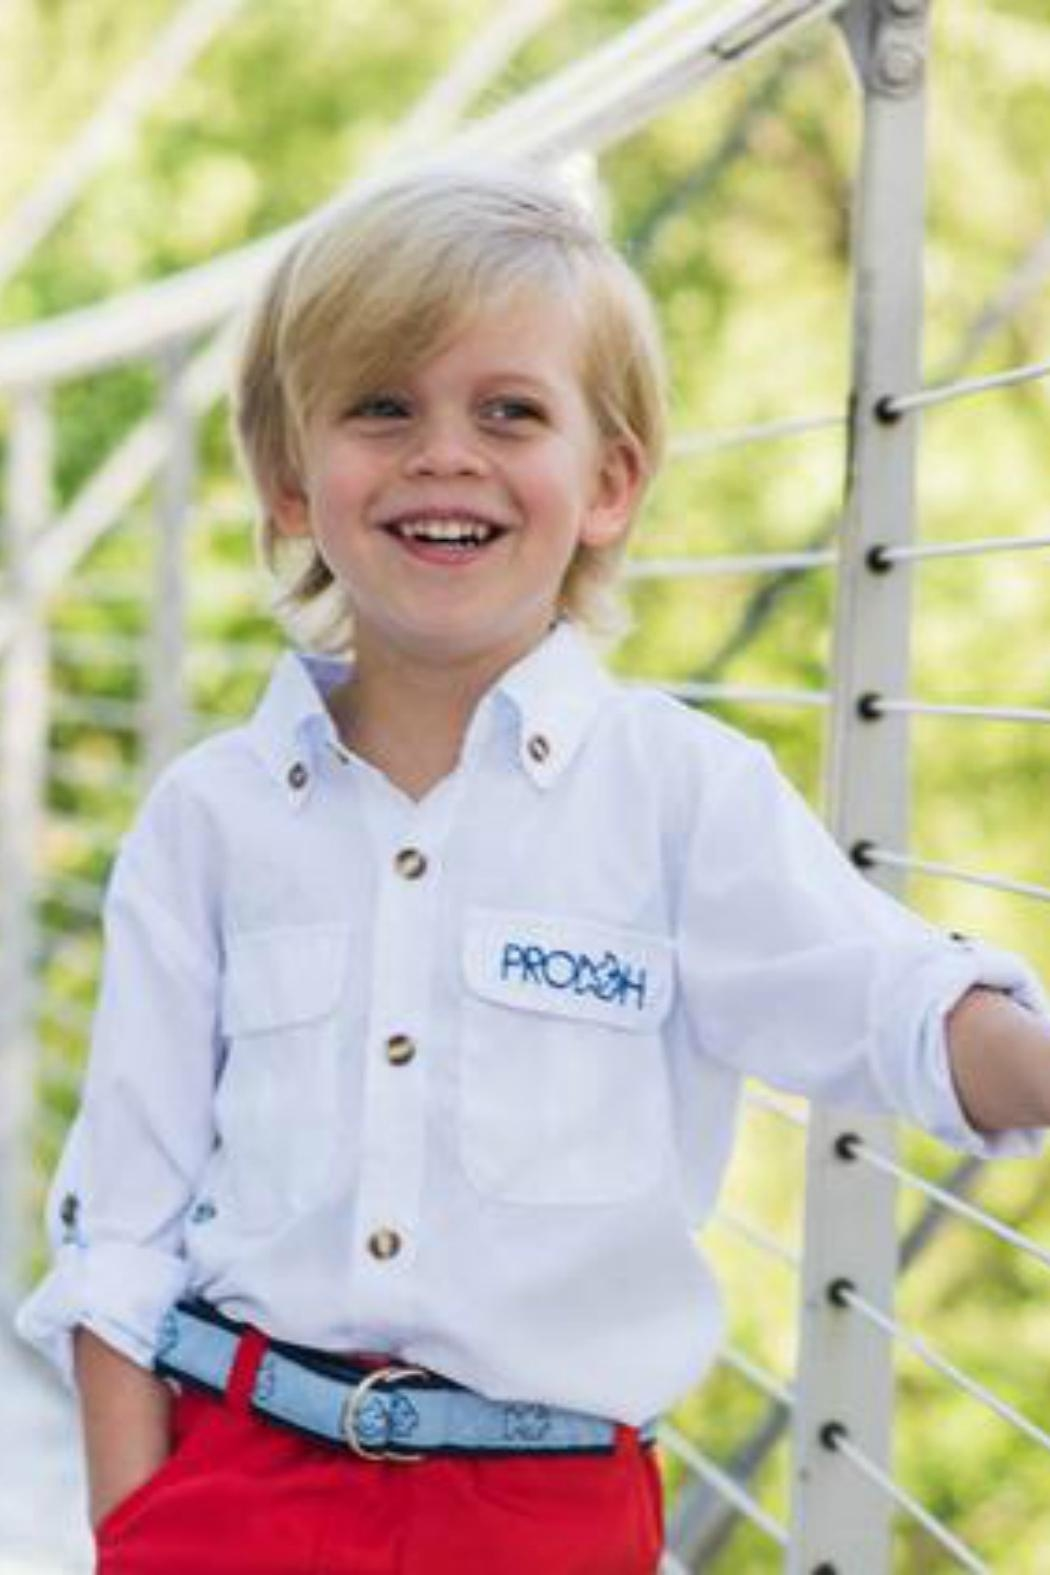 Prodoh boys fishing shirts from alabama by sprout kids for Prodoh fishing shirts